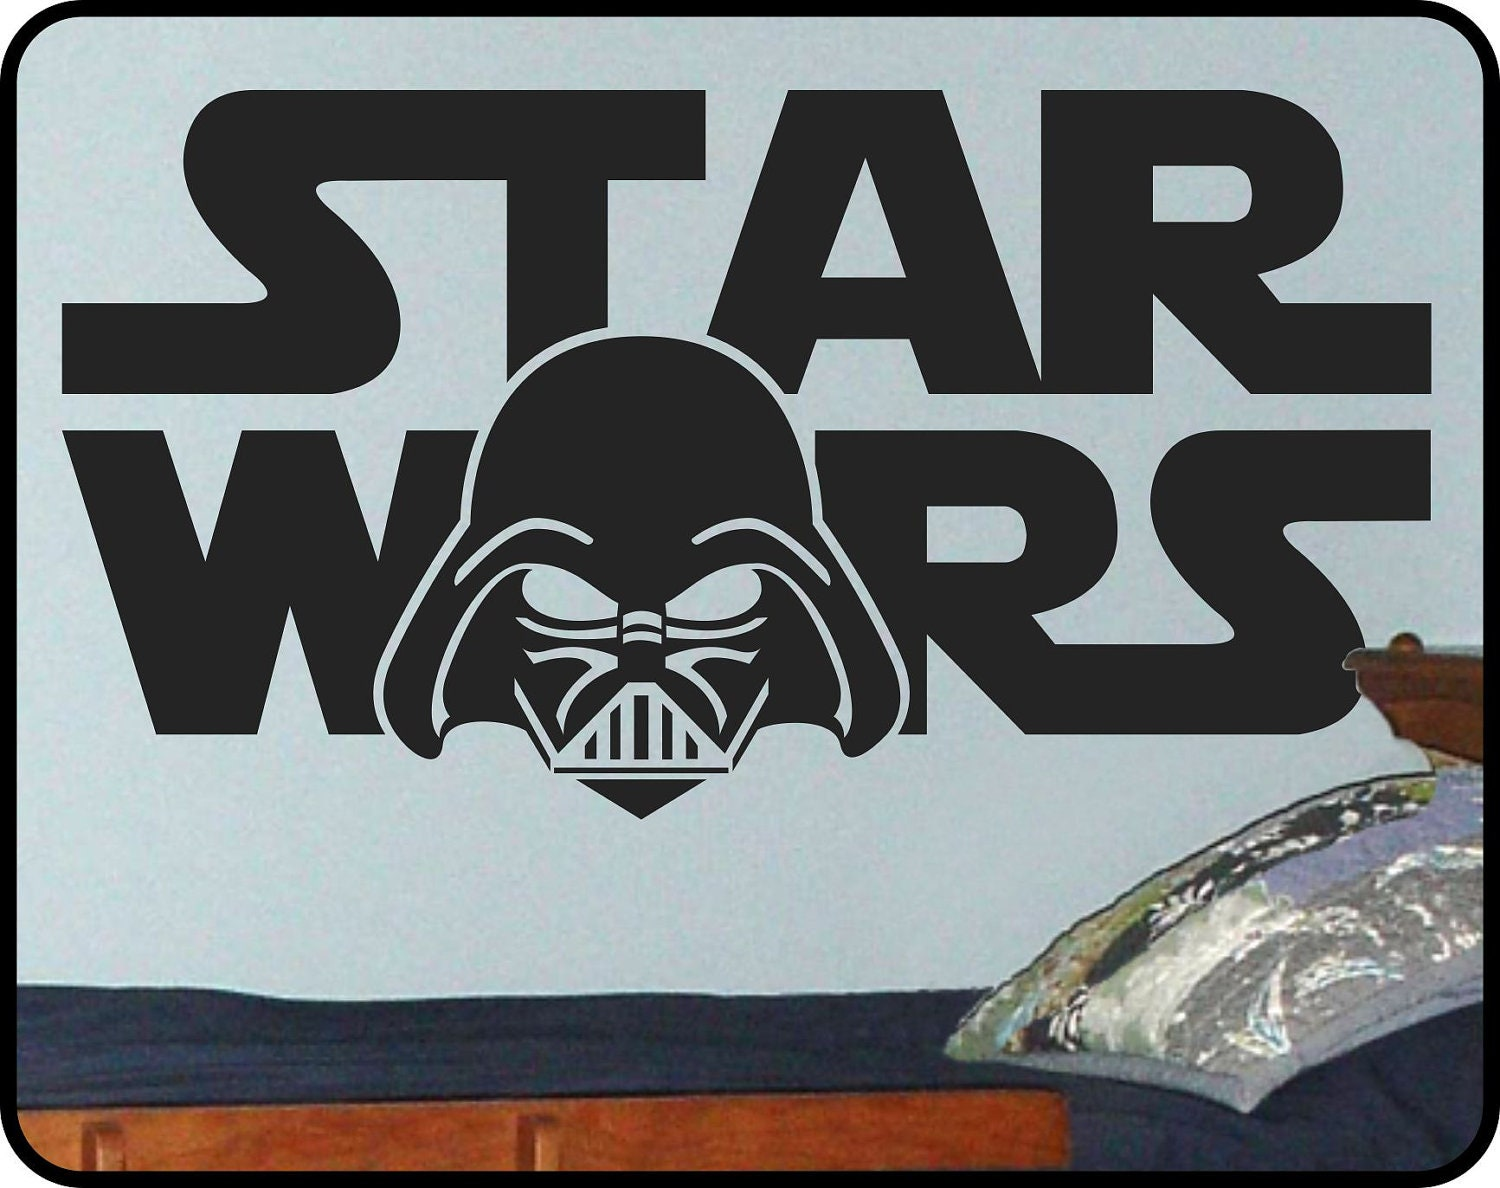 Star wars wall decal darth vader wall art boys room decor zoom amipublicfo Gallery